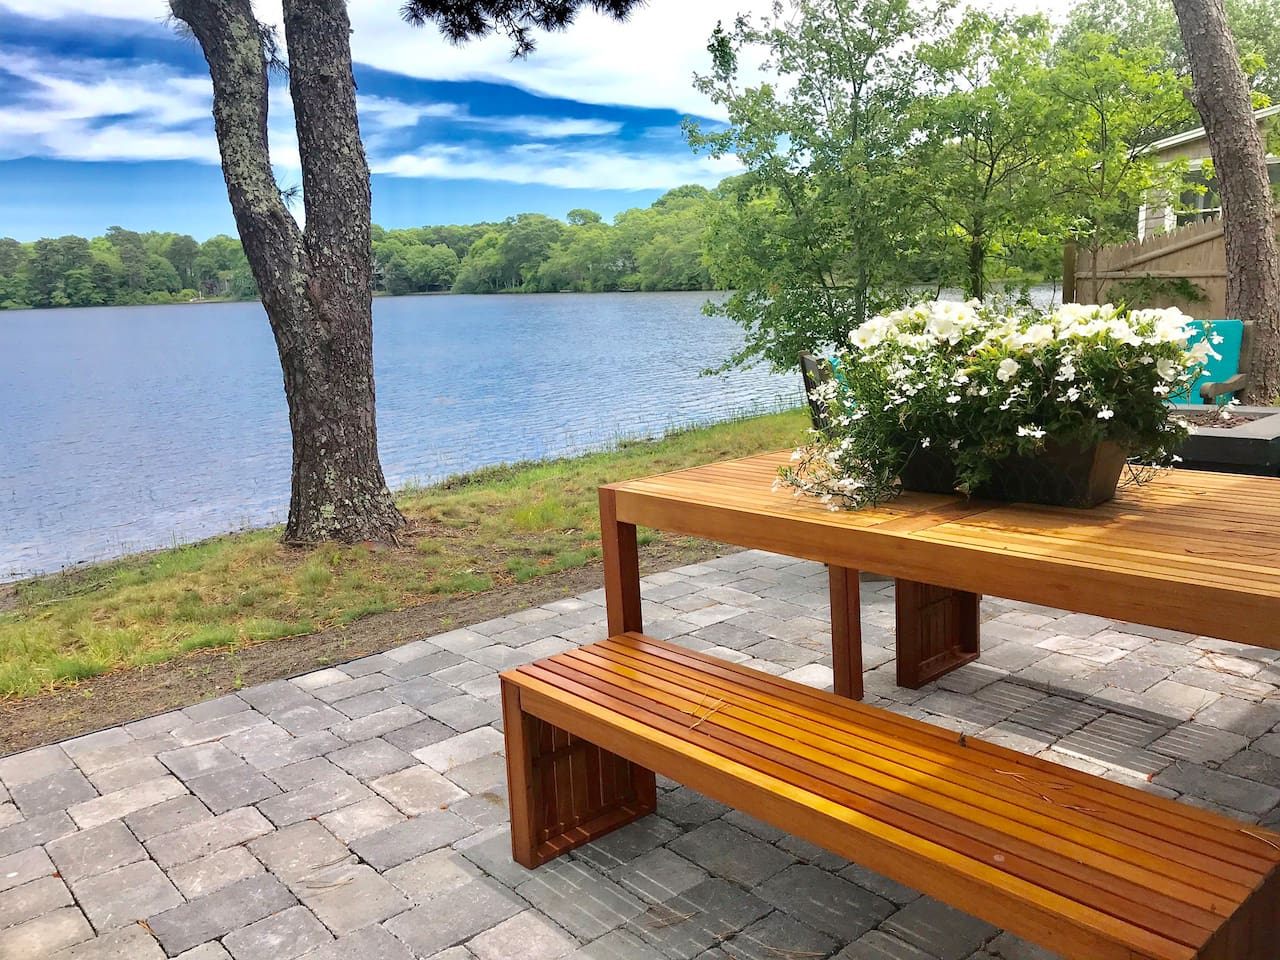 Come experience the serenity and peace at Sunchaser cottage.